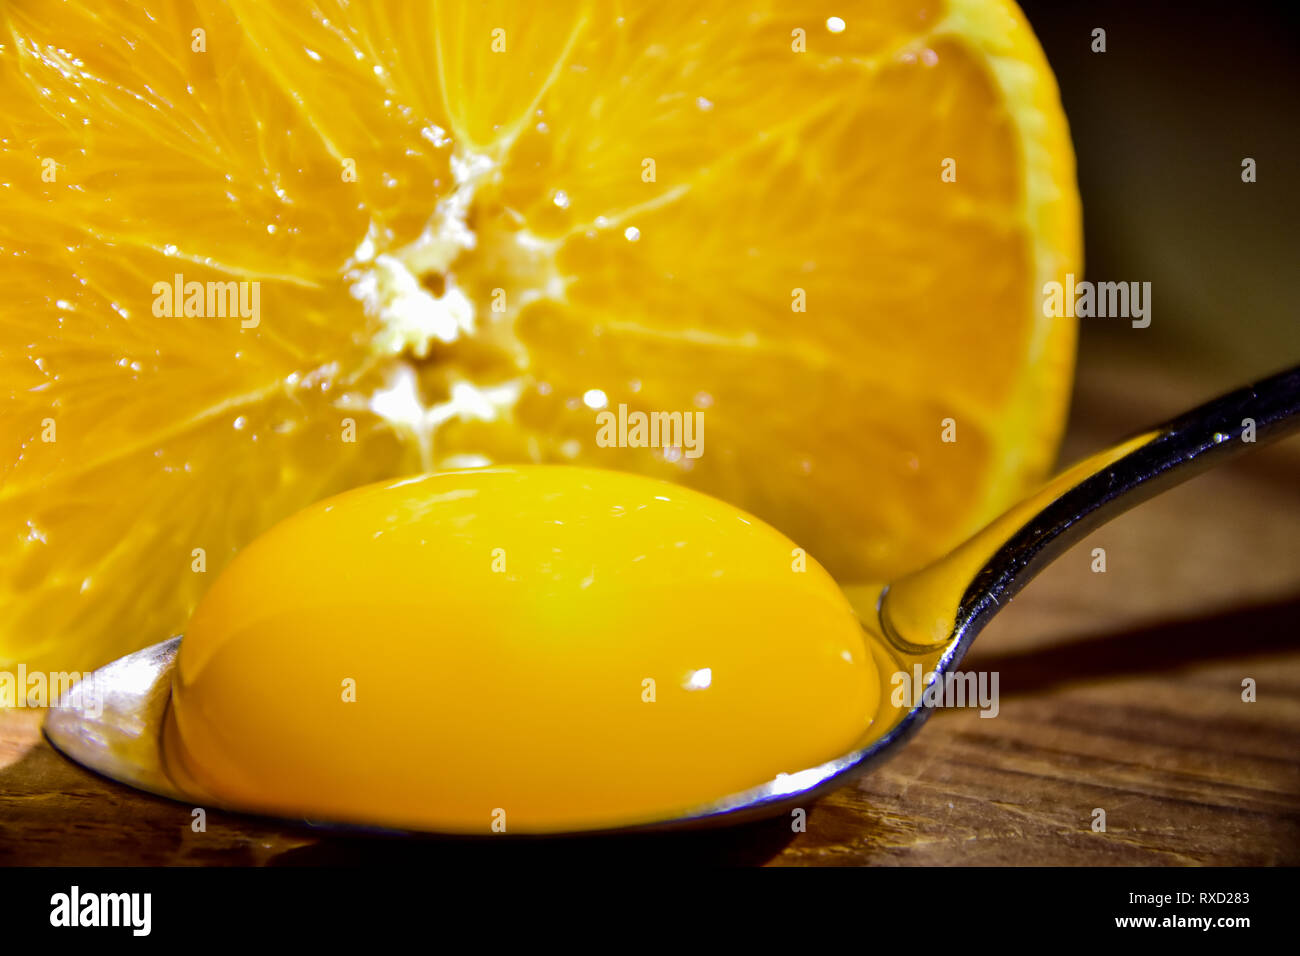 close-up of an egg yoke in a silver spoon in front of an orange sliced in a half - Stock Image